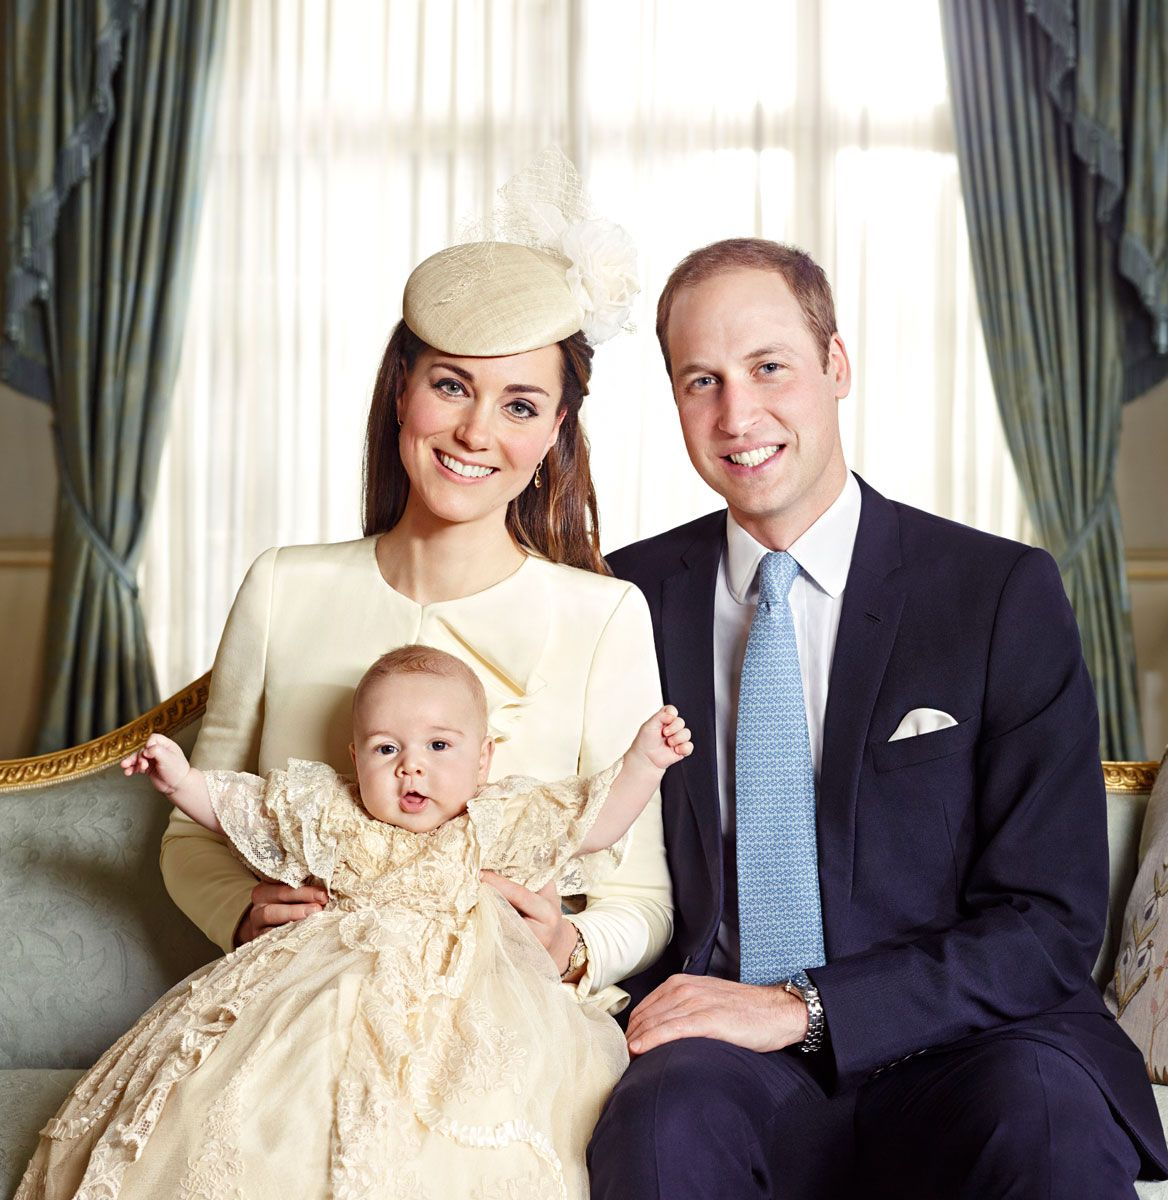 One day after the christening of baby Prince George, Kate Middleton and Prince William released four official portraits of the royal family Credit: Jason ...